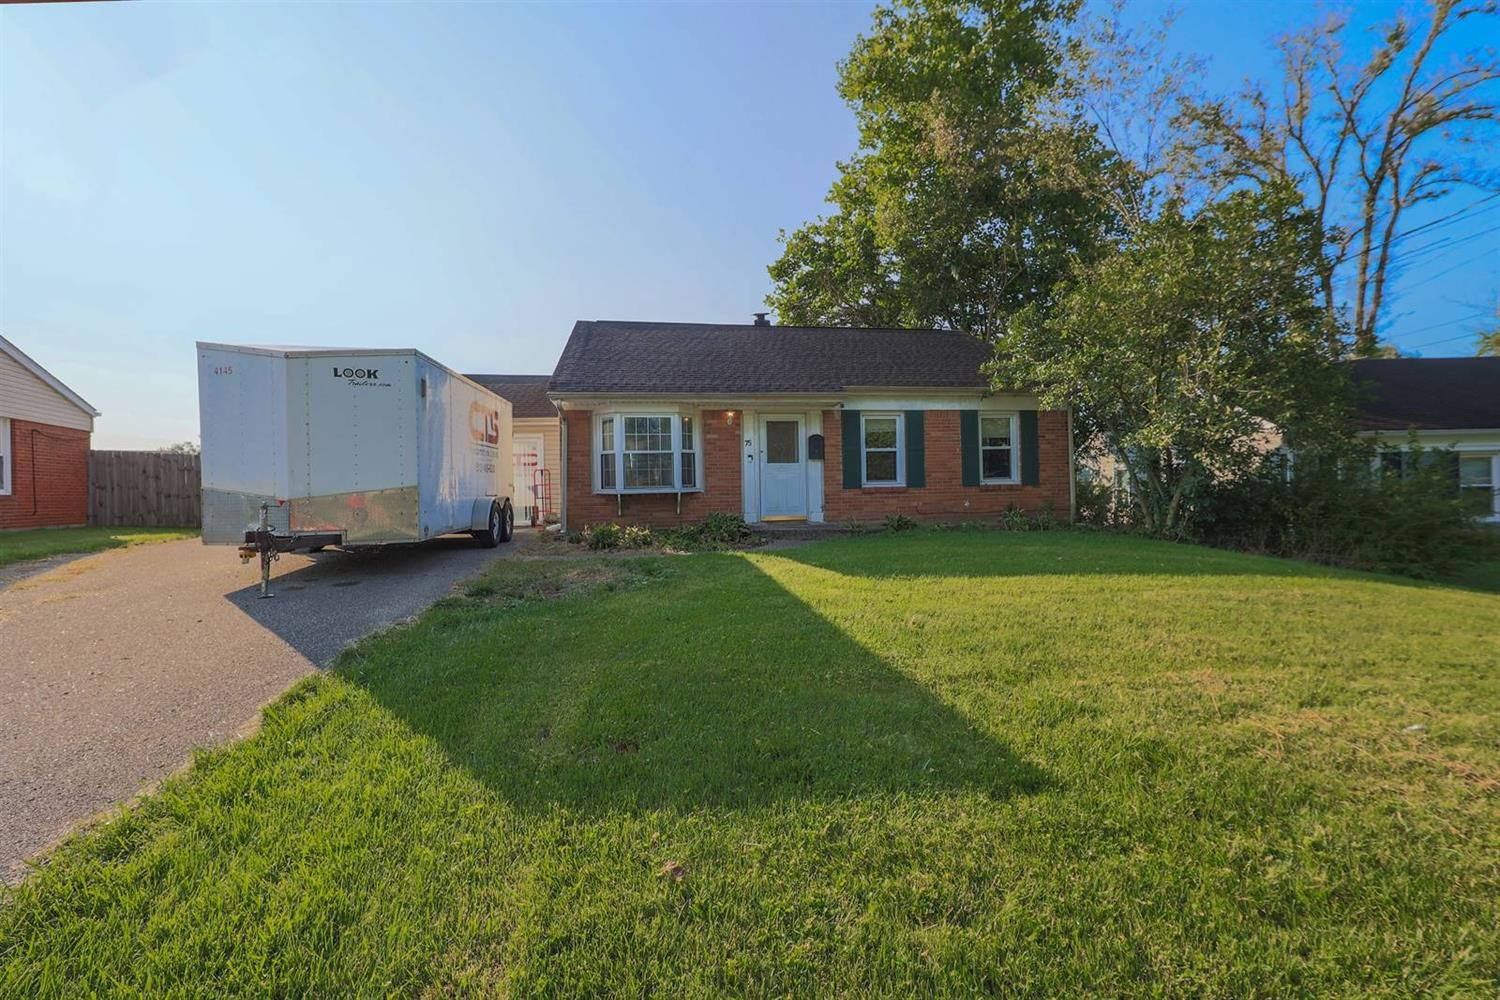 75 Miamiview Drive, Loveland, Ohio 45140, 3 Bedrooms Bedrooms, 6 Rooms Rooms,1 BathroomBathrooms,Single Family Residence,For Sale,Miamiview,1715582